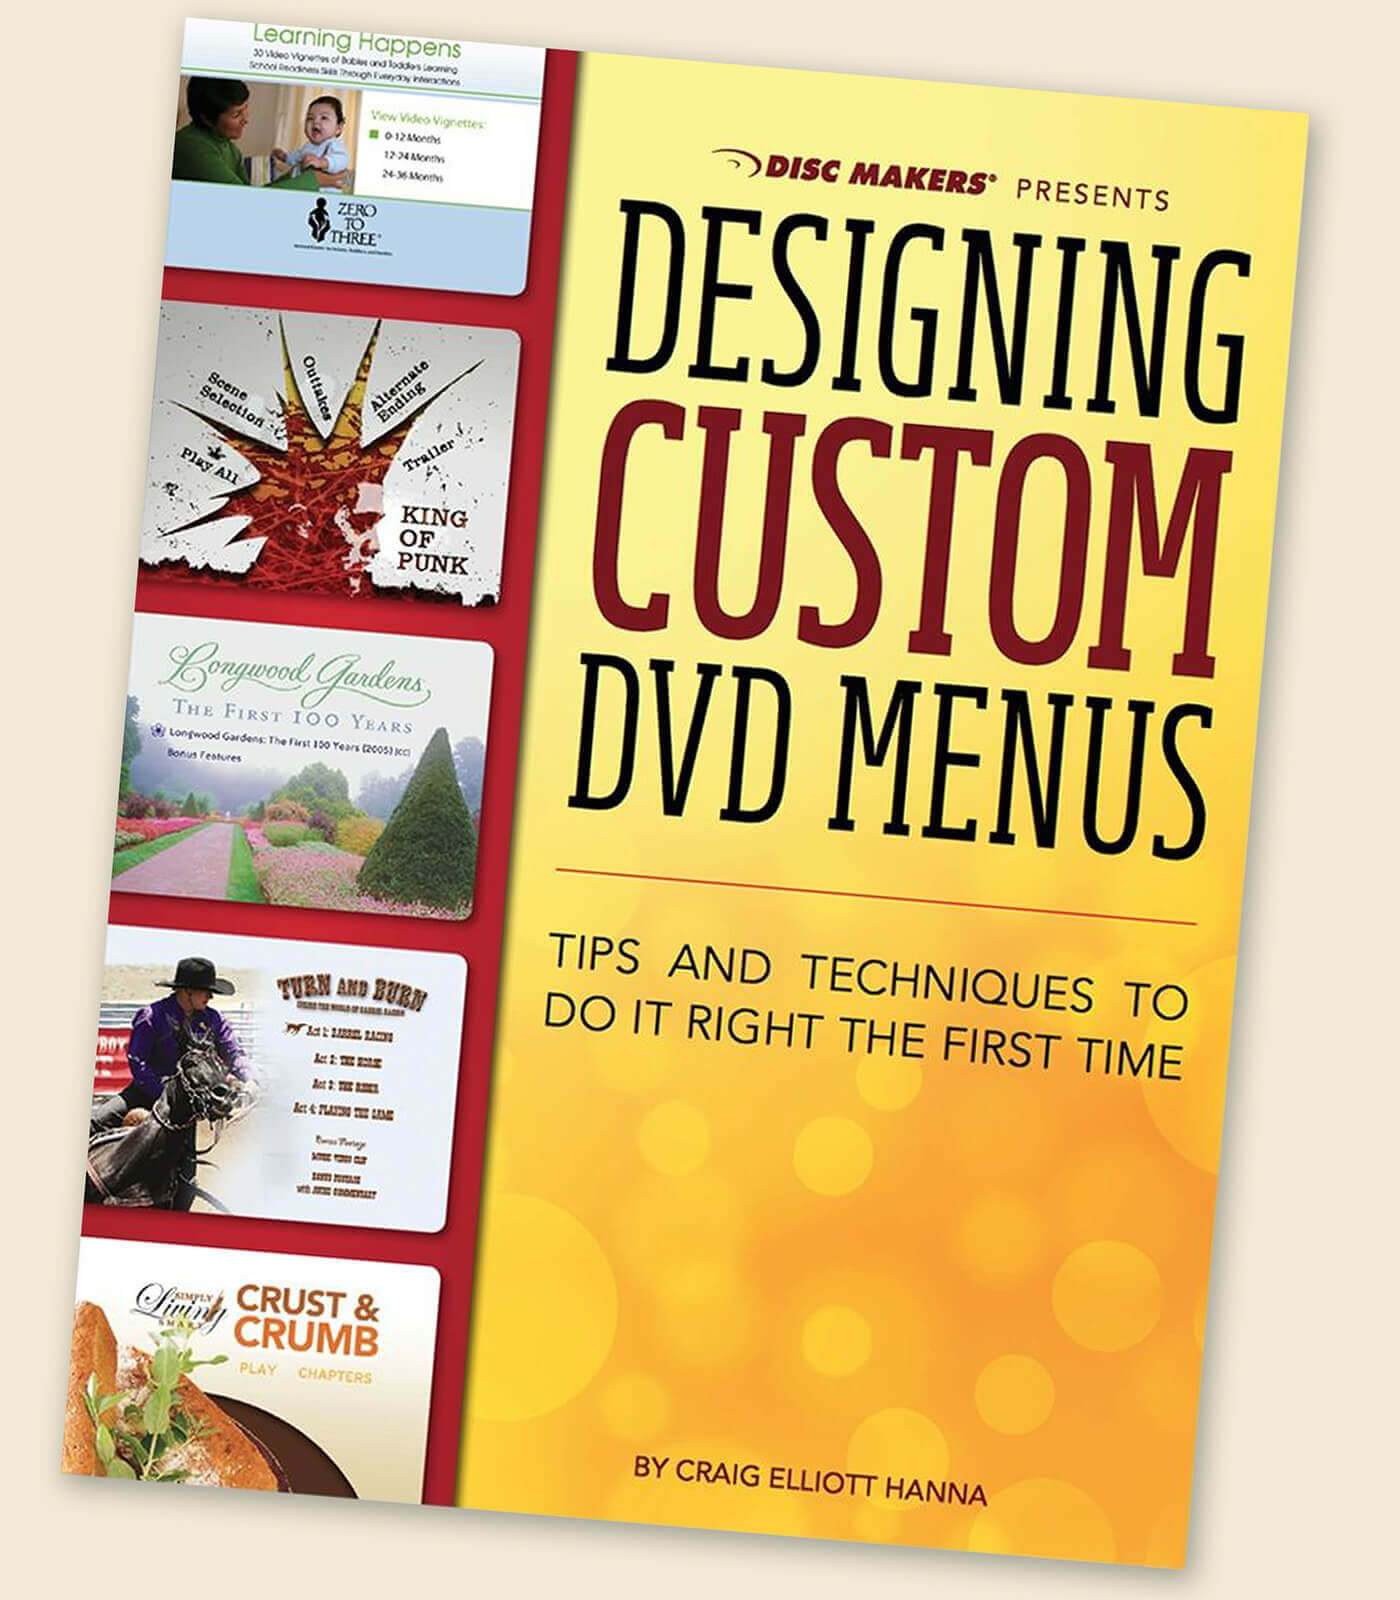 Design your own DVD menu